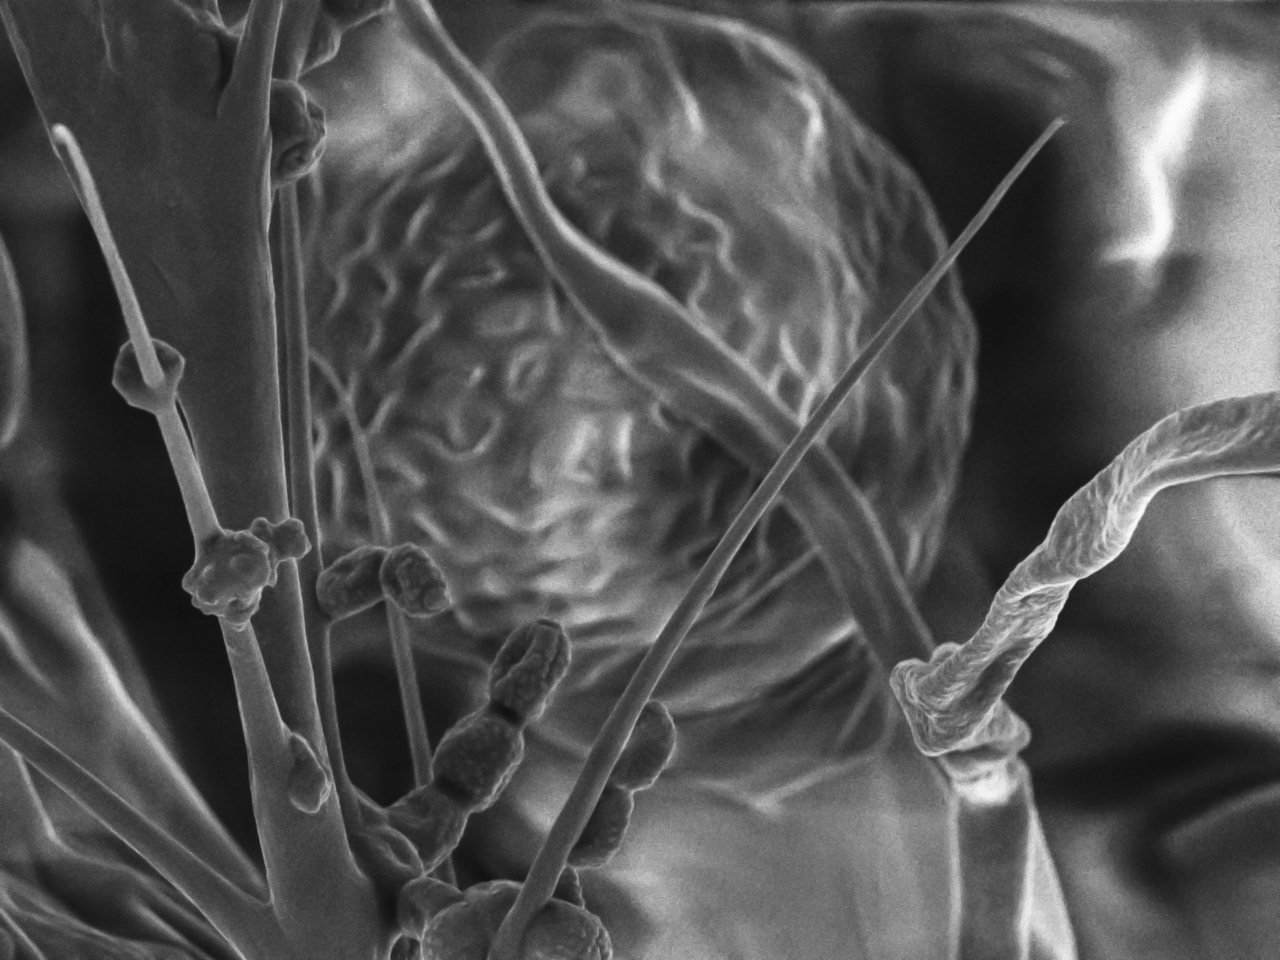 Radha Chaddah, The Sound of You, 2018. Scanning electron micrograph of a spec of beeswax magnified 3000x